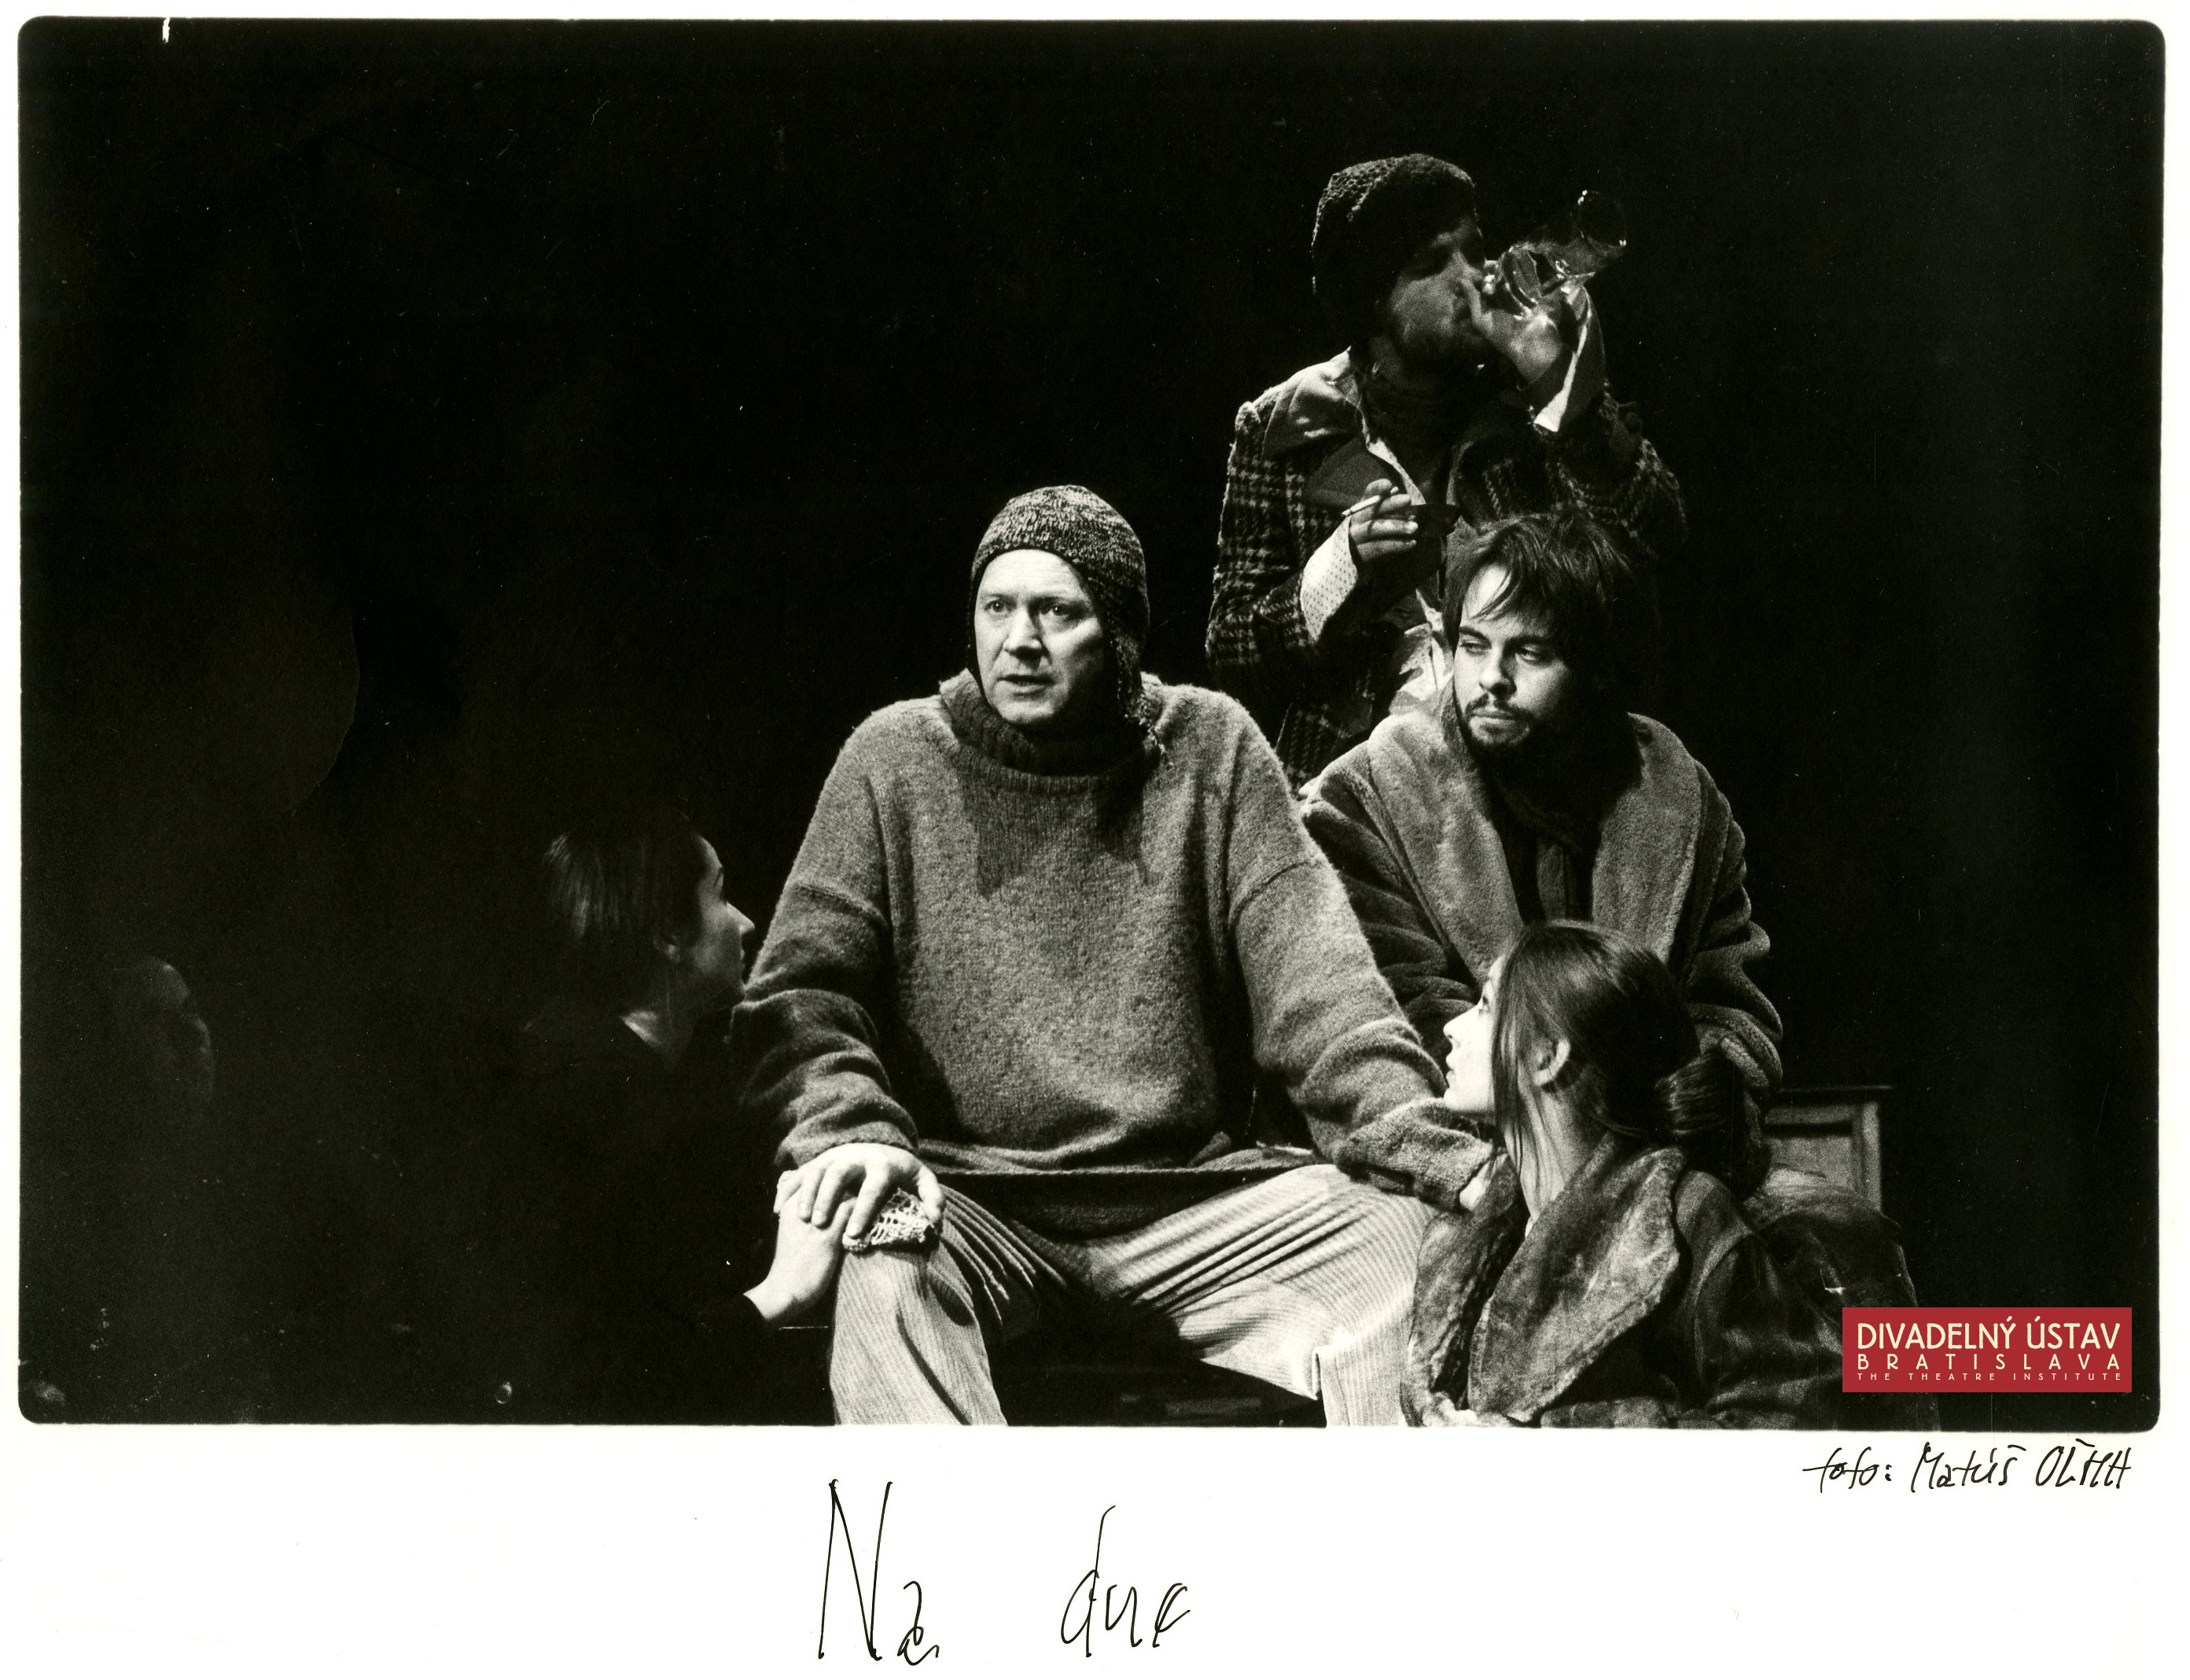 Na dne/ The Lower Depths, 1998